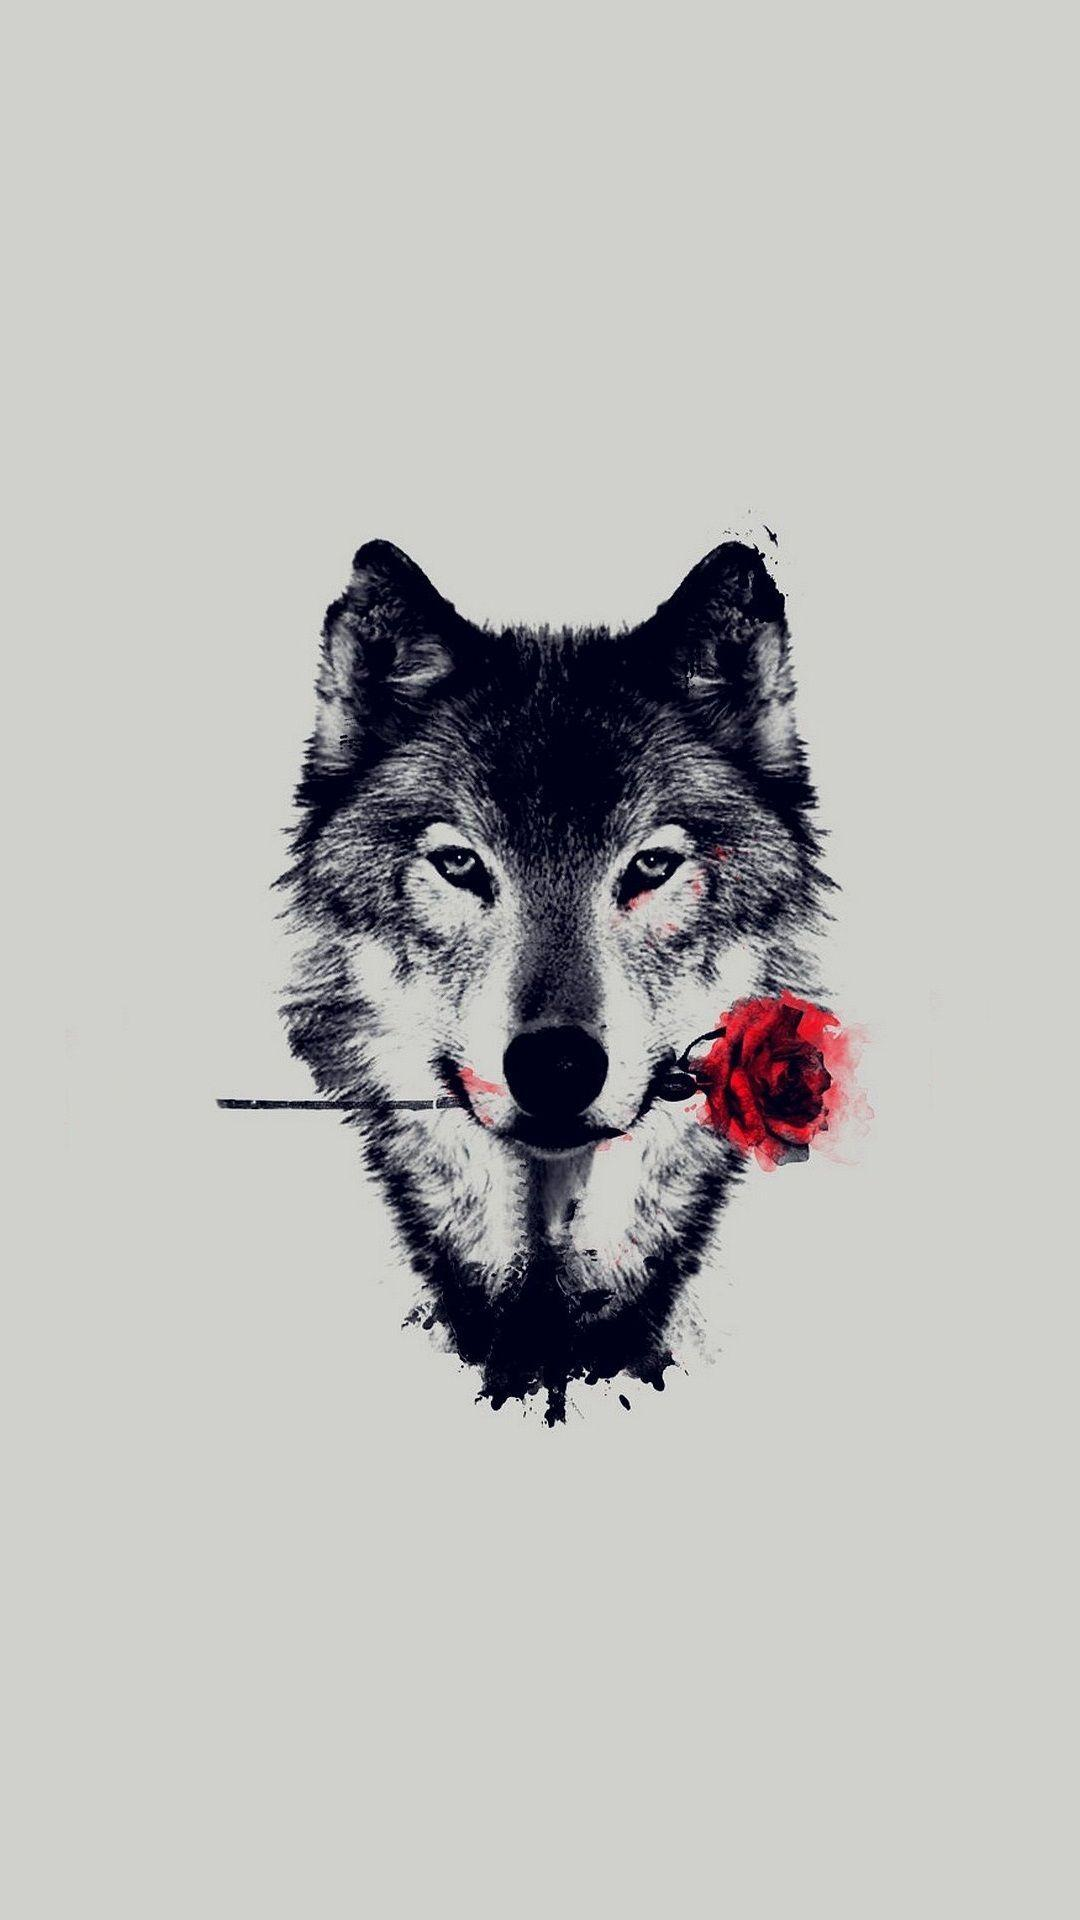 Haunted Wolf Wallpapers Wallpaper Cave